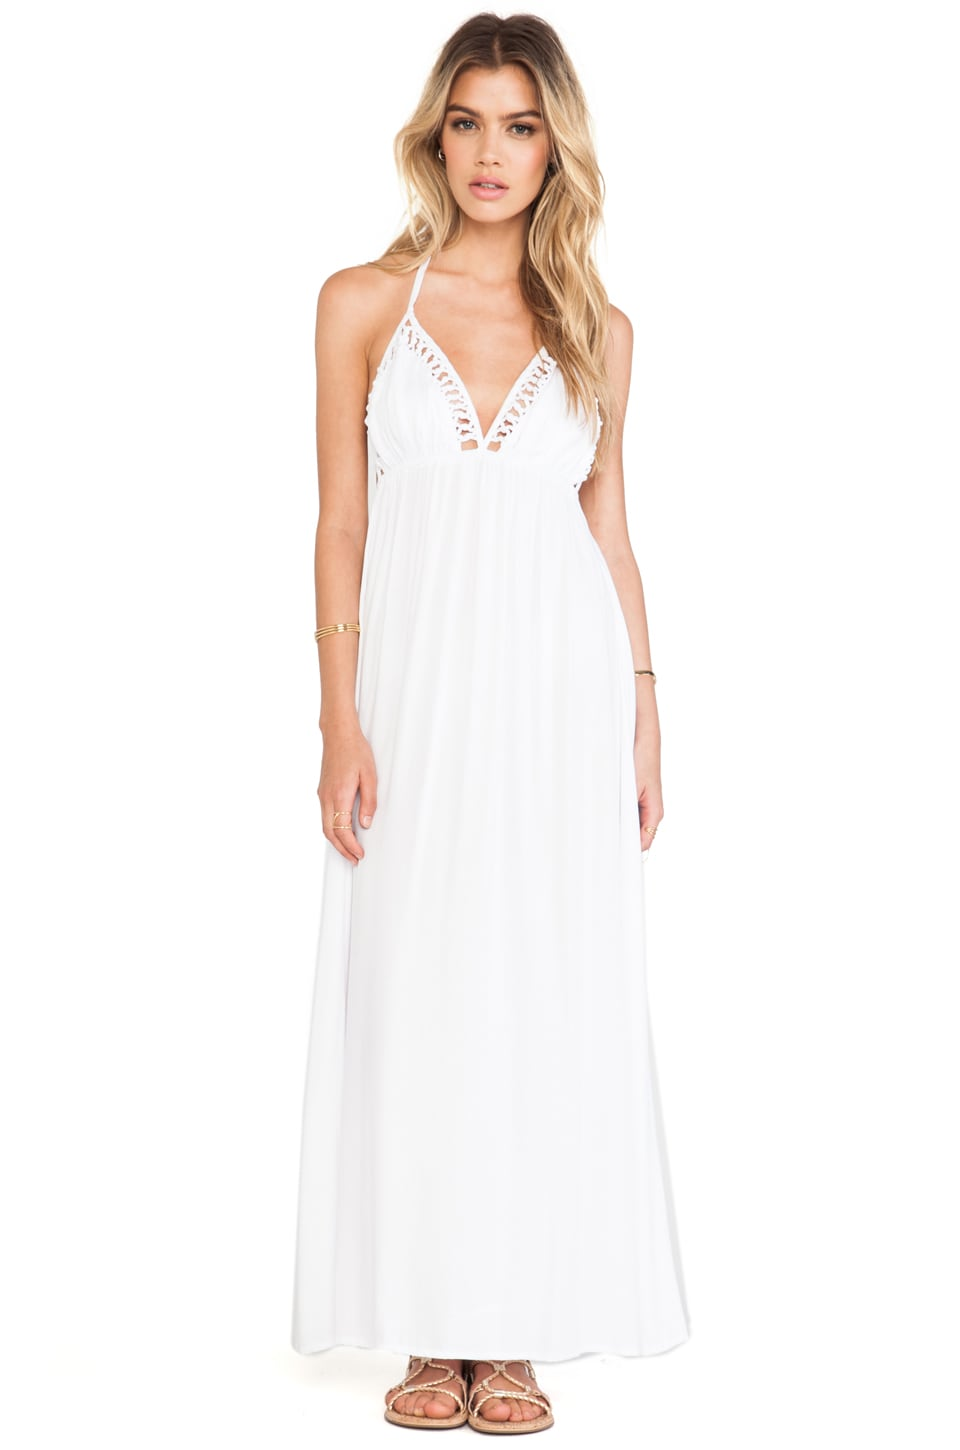 Tiare Hawaii First Date Maxi Dress in White